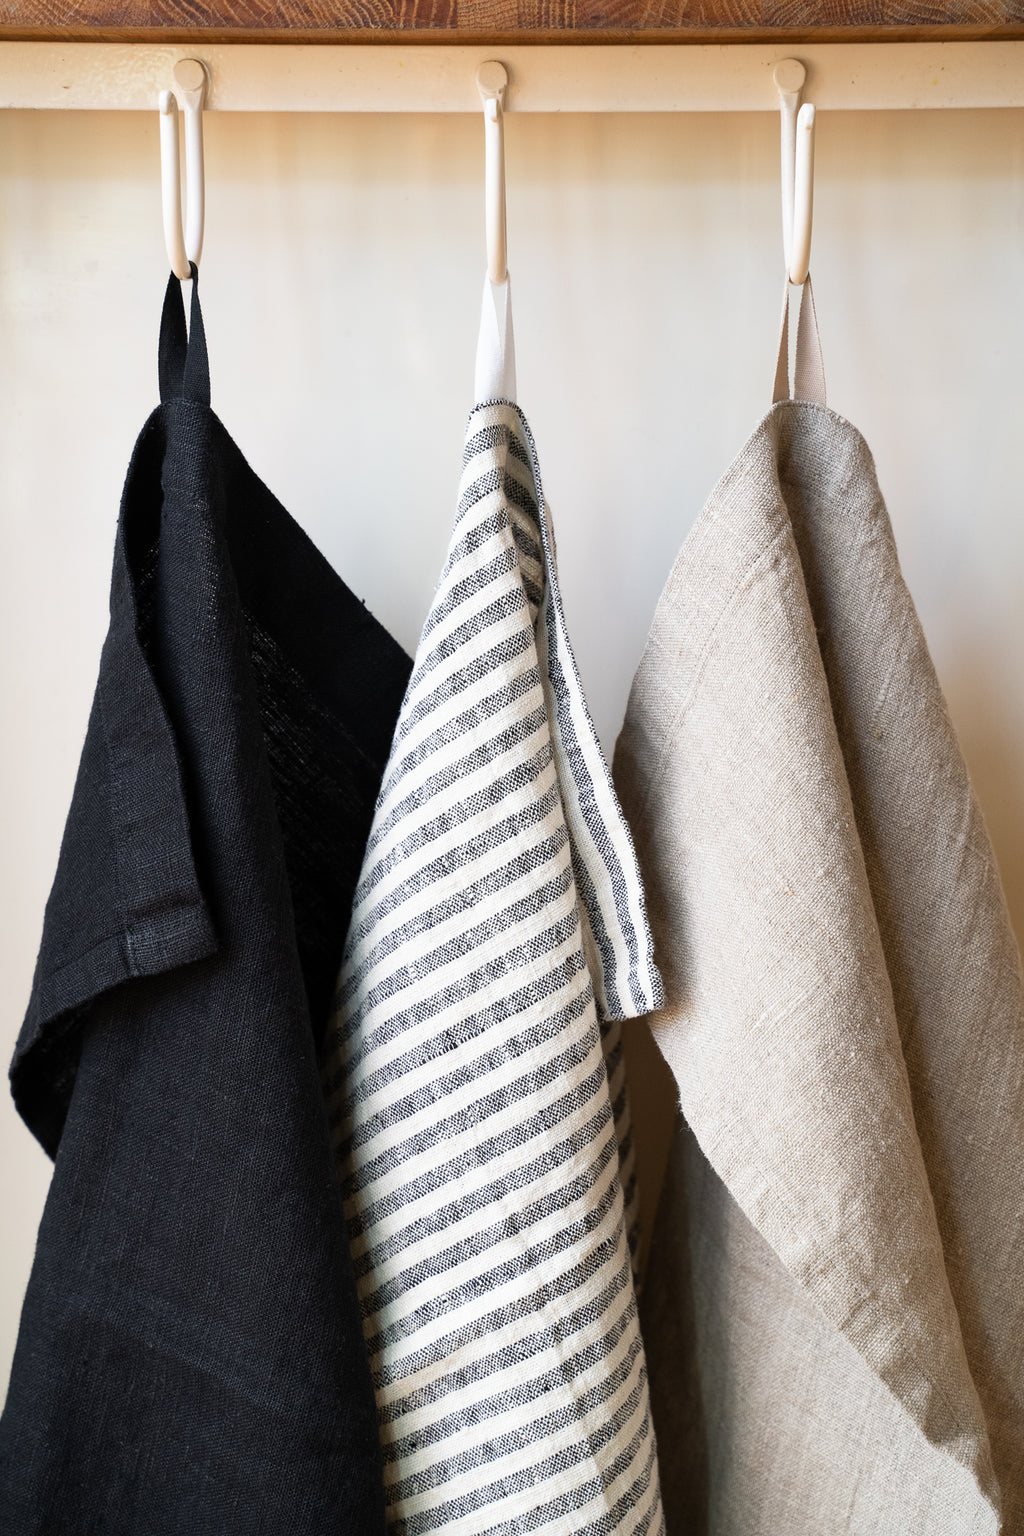 French Linen Hand Towel - Ticking  Stripe